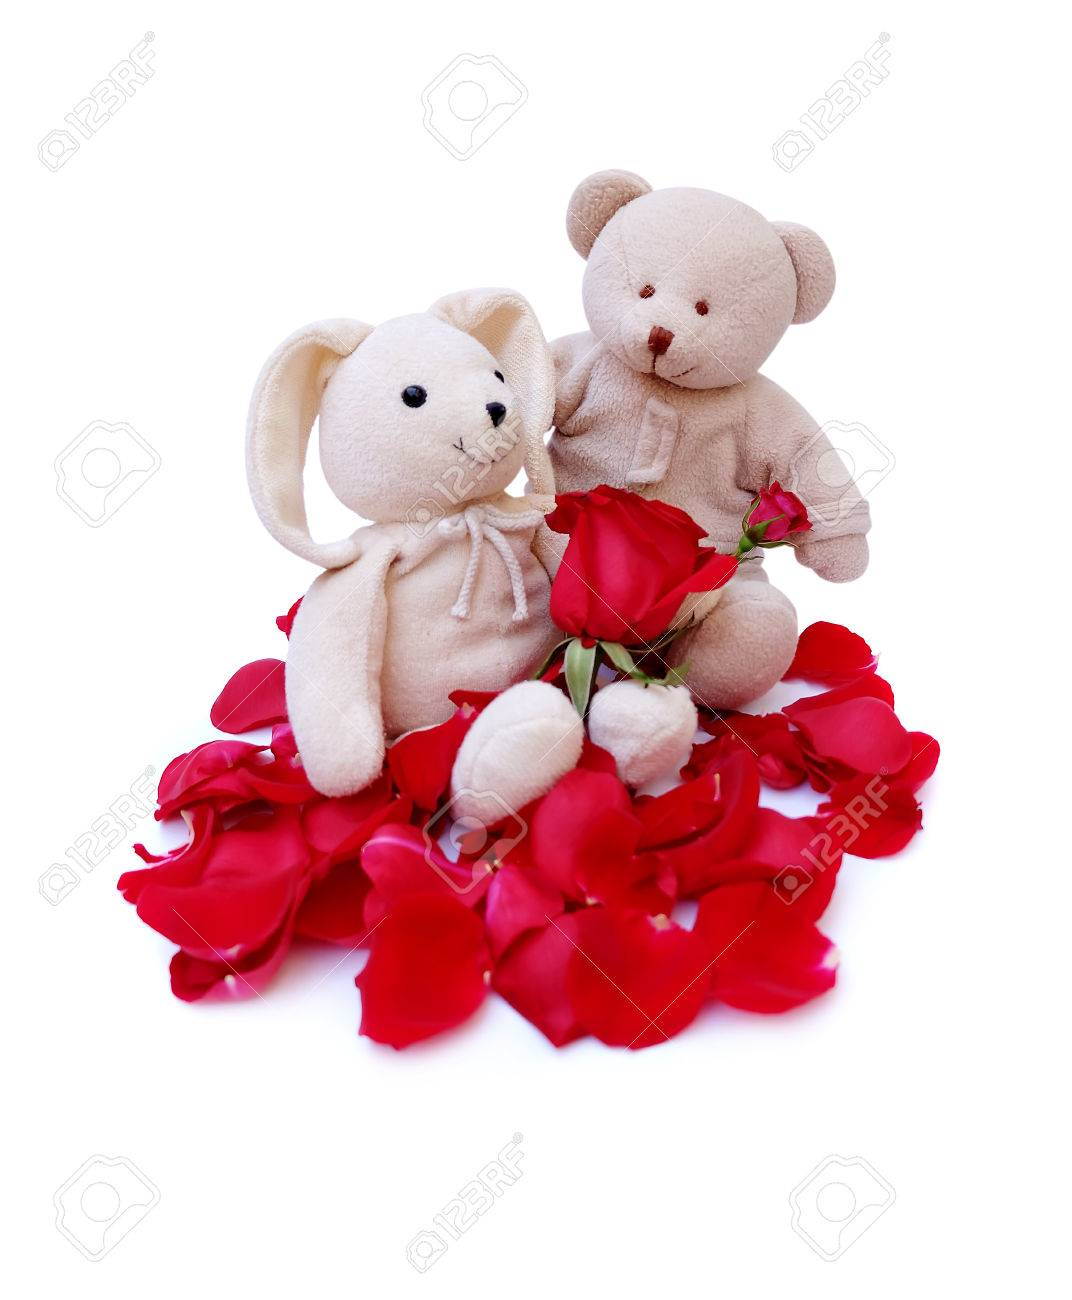 Cute teddy bear Hold red roses For a special someone on a specific day. - 80936875